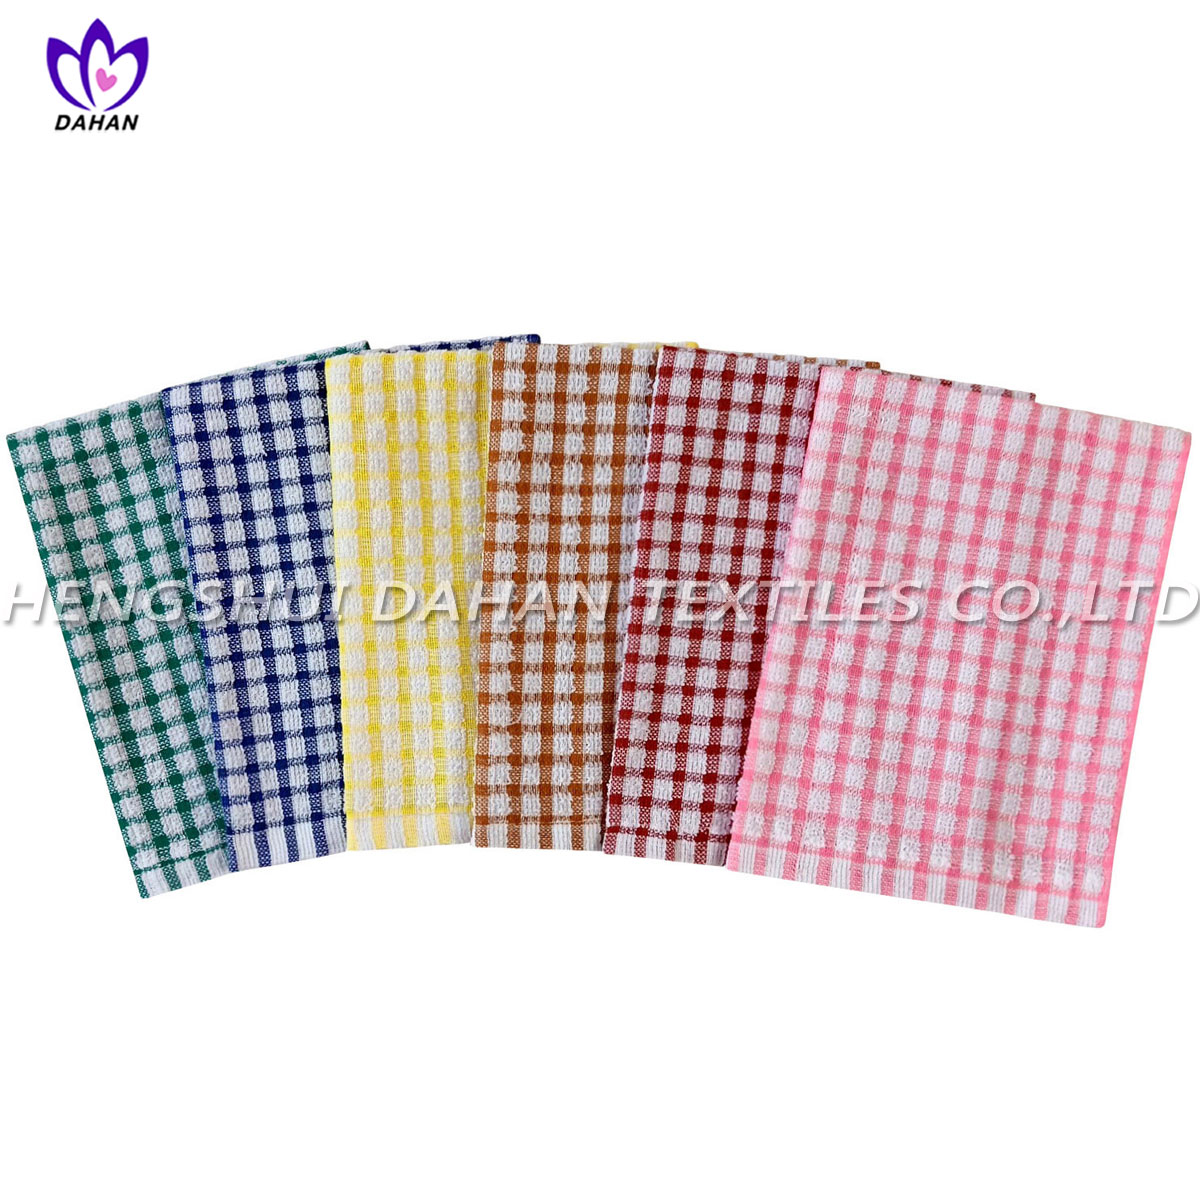 CT47 100%cotton yarn dyed kitchen towel.